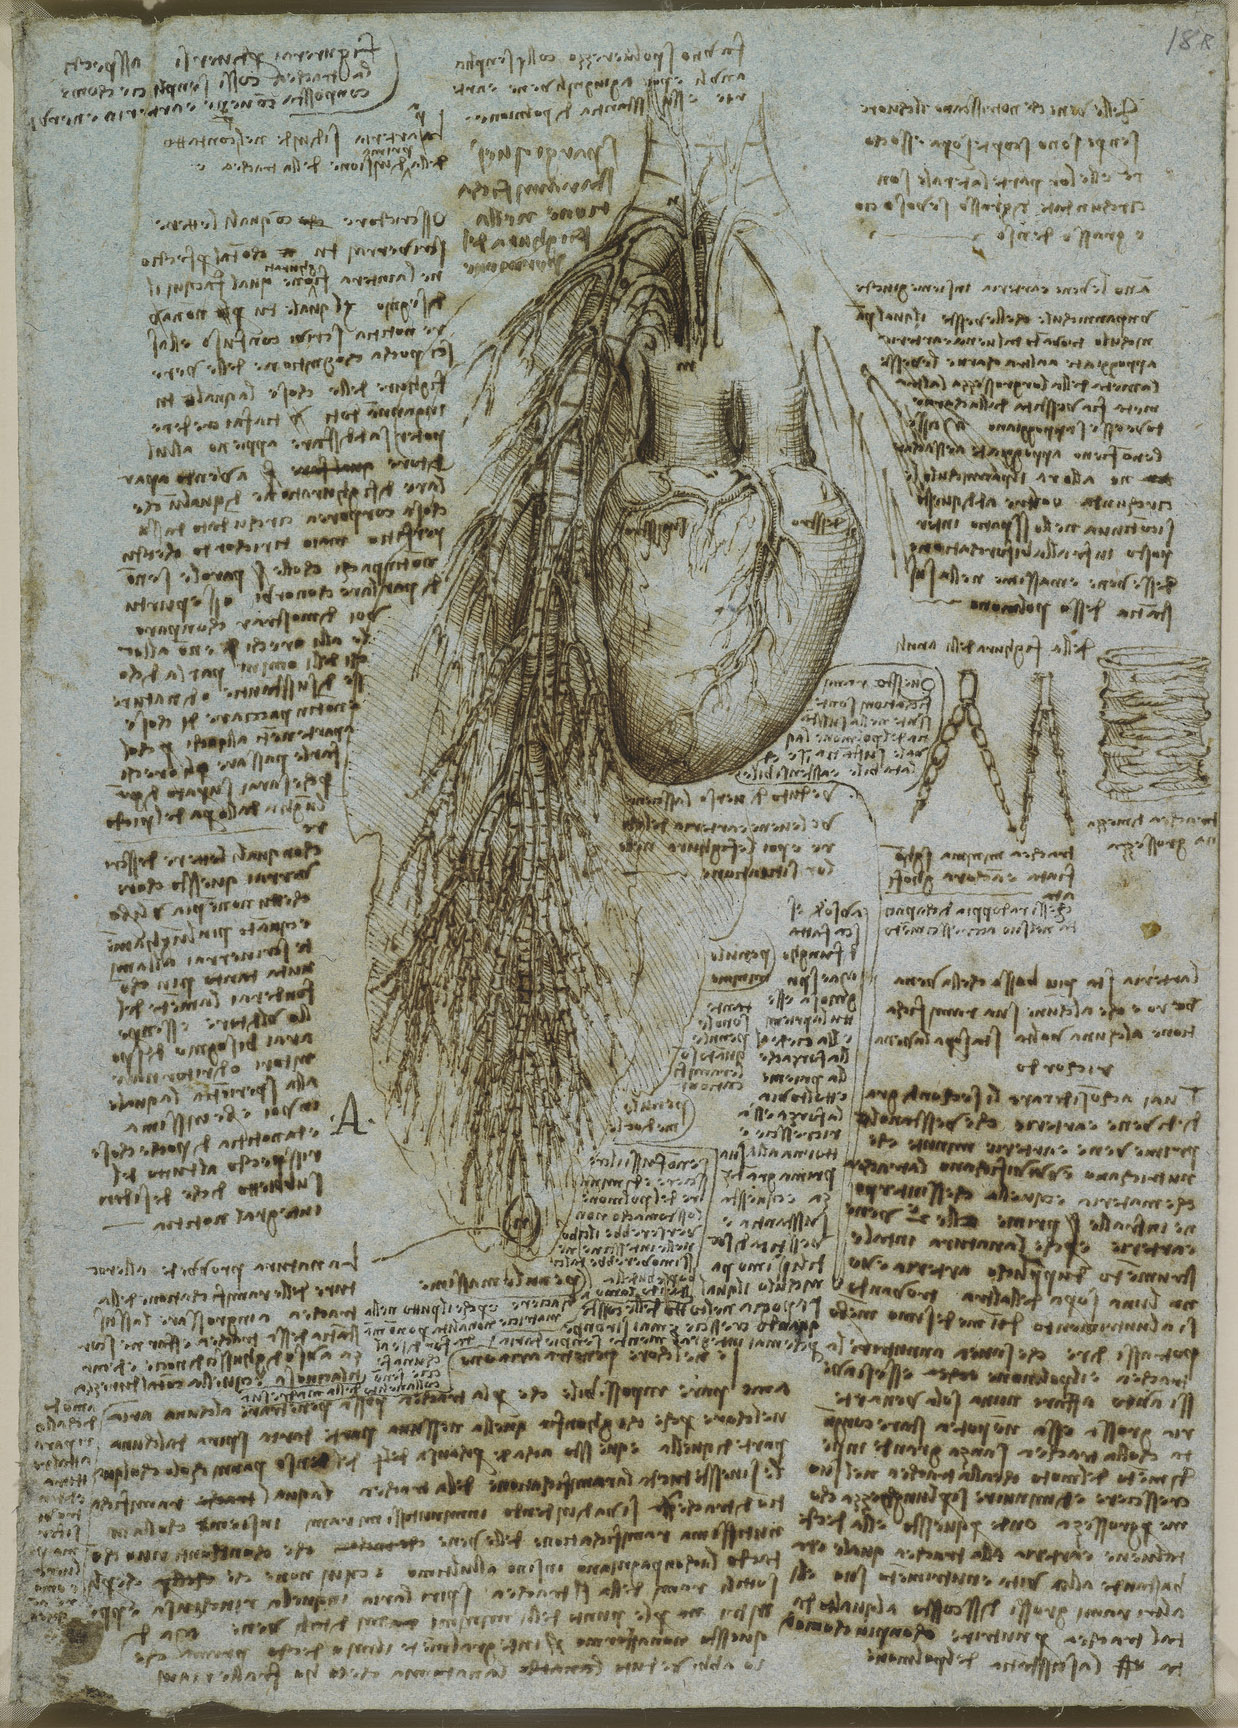 Recto: Studies of the heart and pulmonary vessels of an ox. Vers